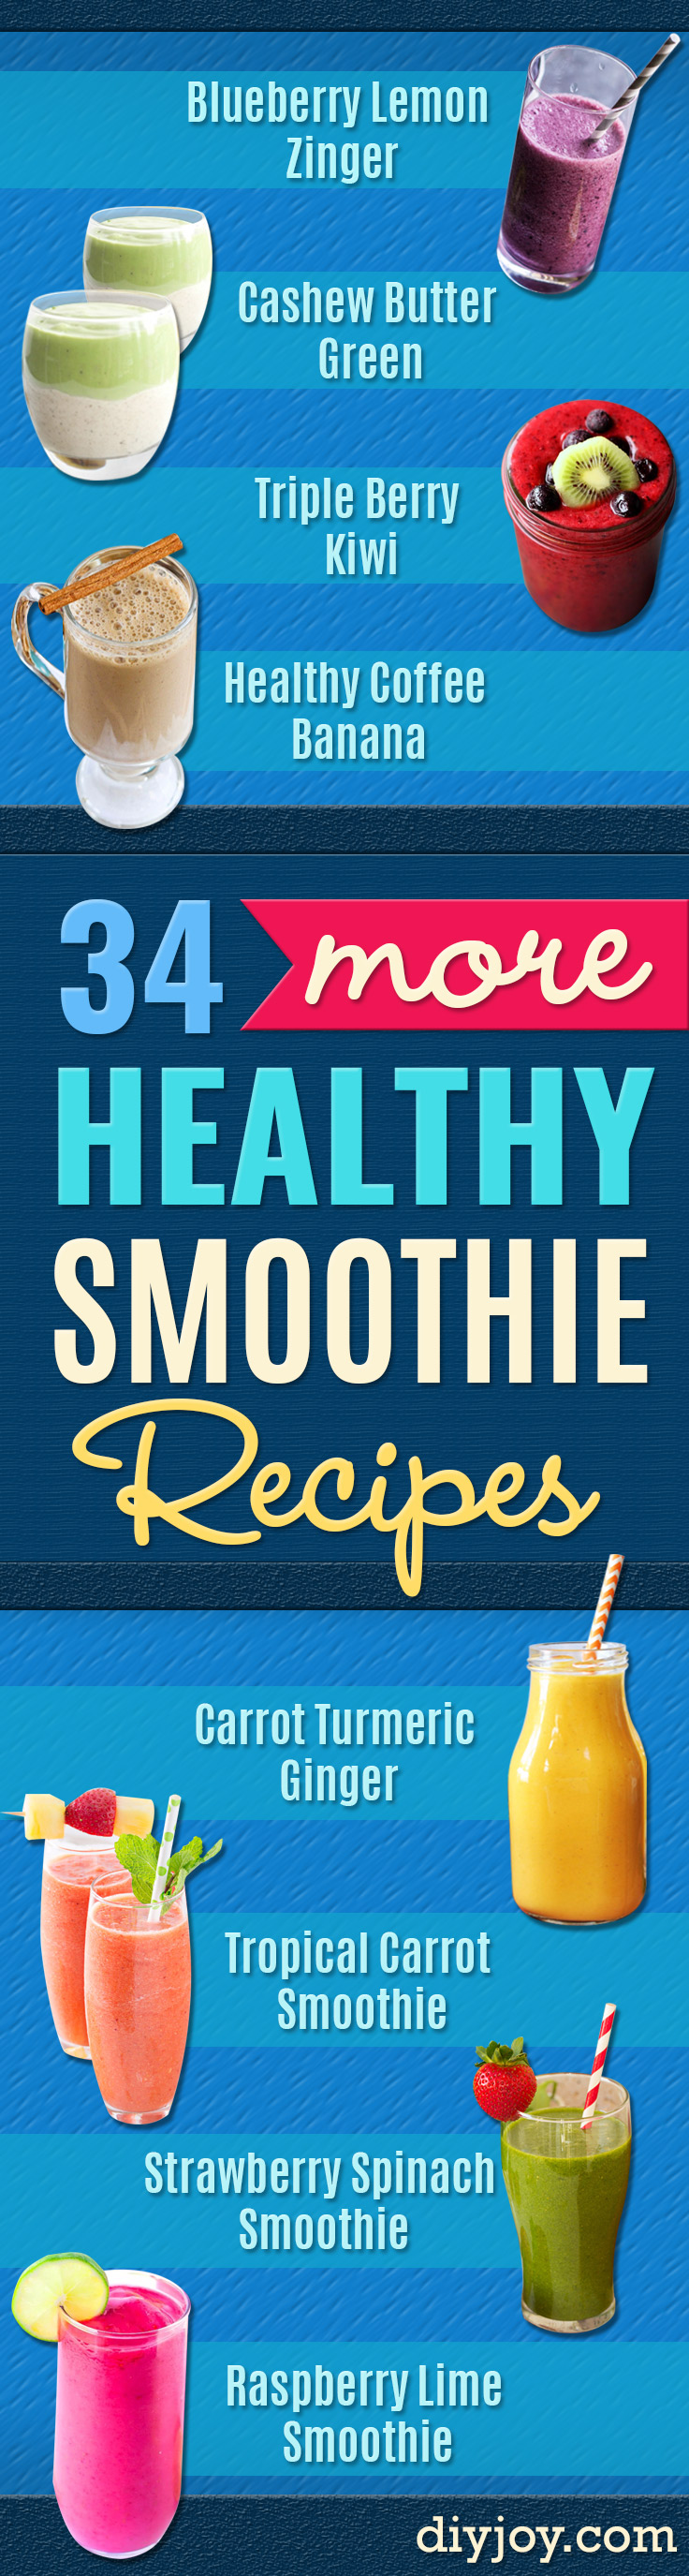 Healthy Smoothie Recipes - Easy smoothie recipe ideas for breakfast, energy. Low calorie and high protein recipes for weightloss and to lose weight. Simple homemade recipe ideas that kids love. Quick EASY SMOOTHIE RECIES before work and school, after workout #recipes #healthy #healthyrecipes